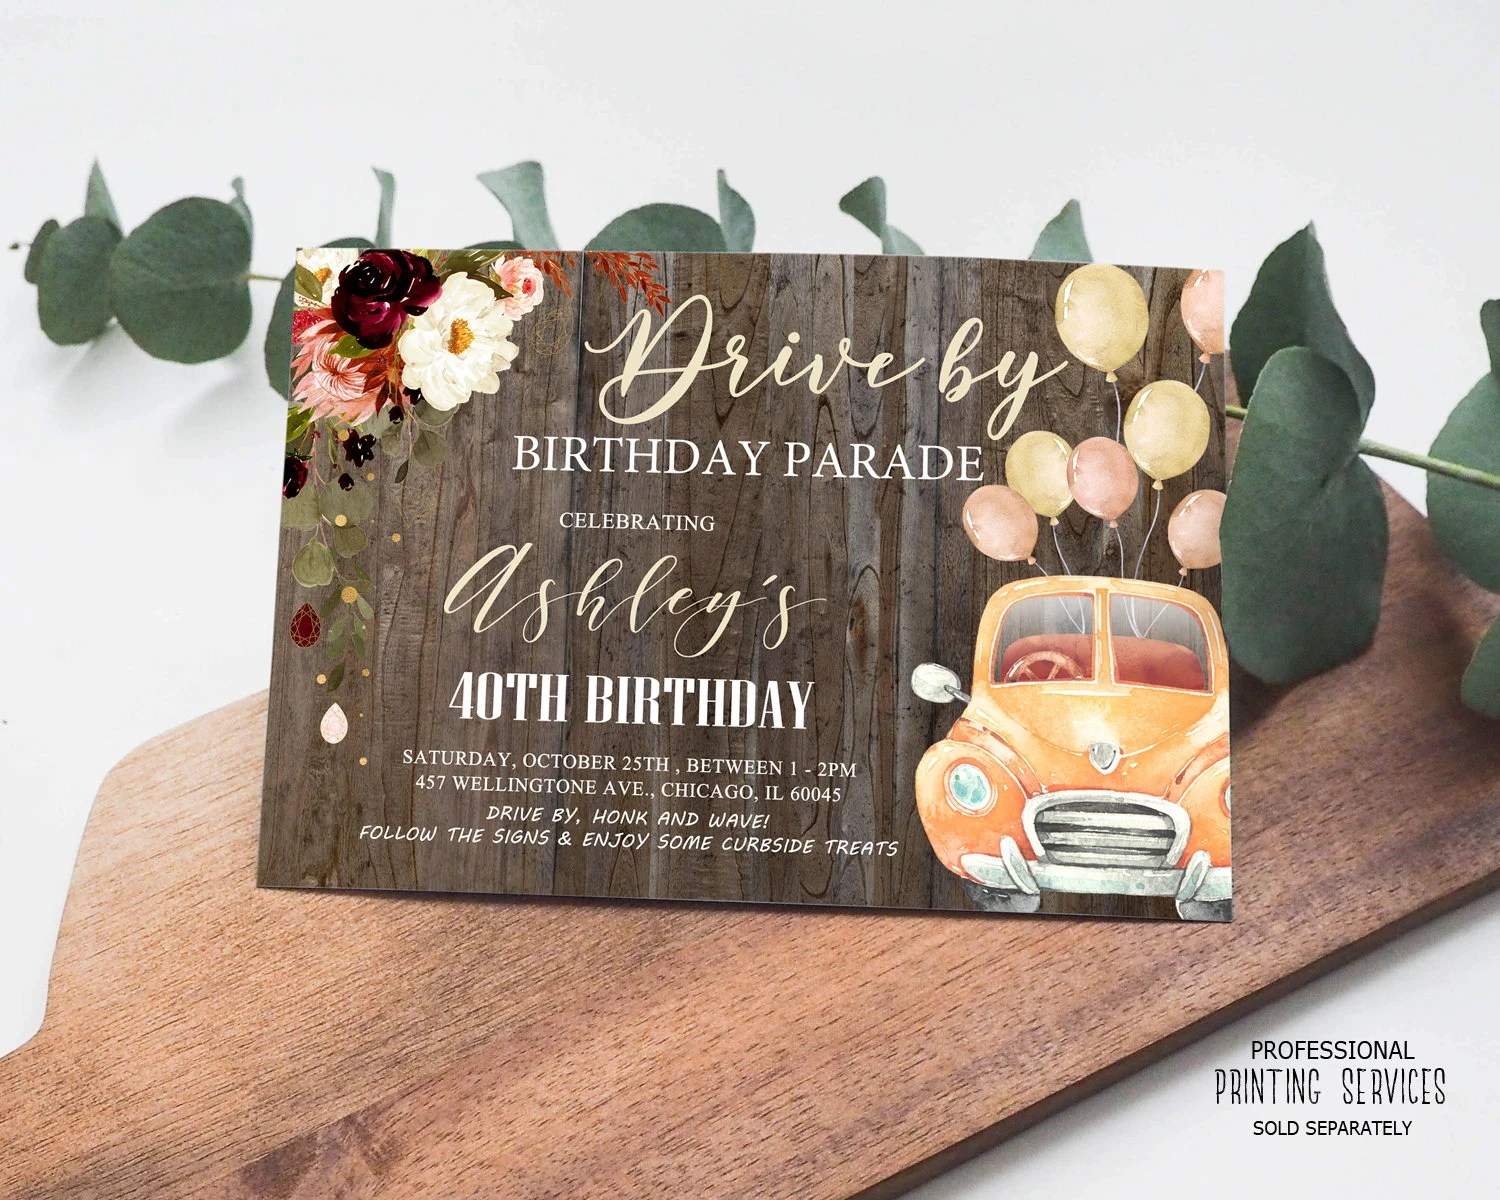 rustic drive by birthday parade